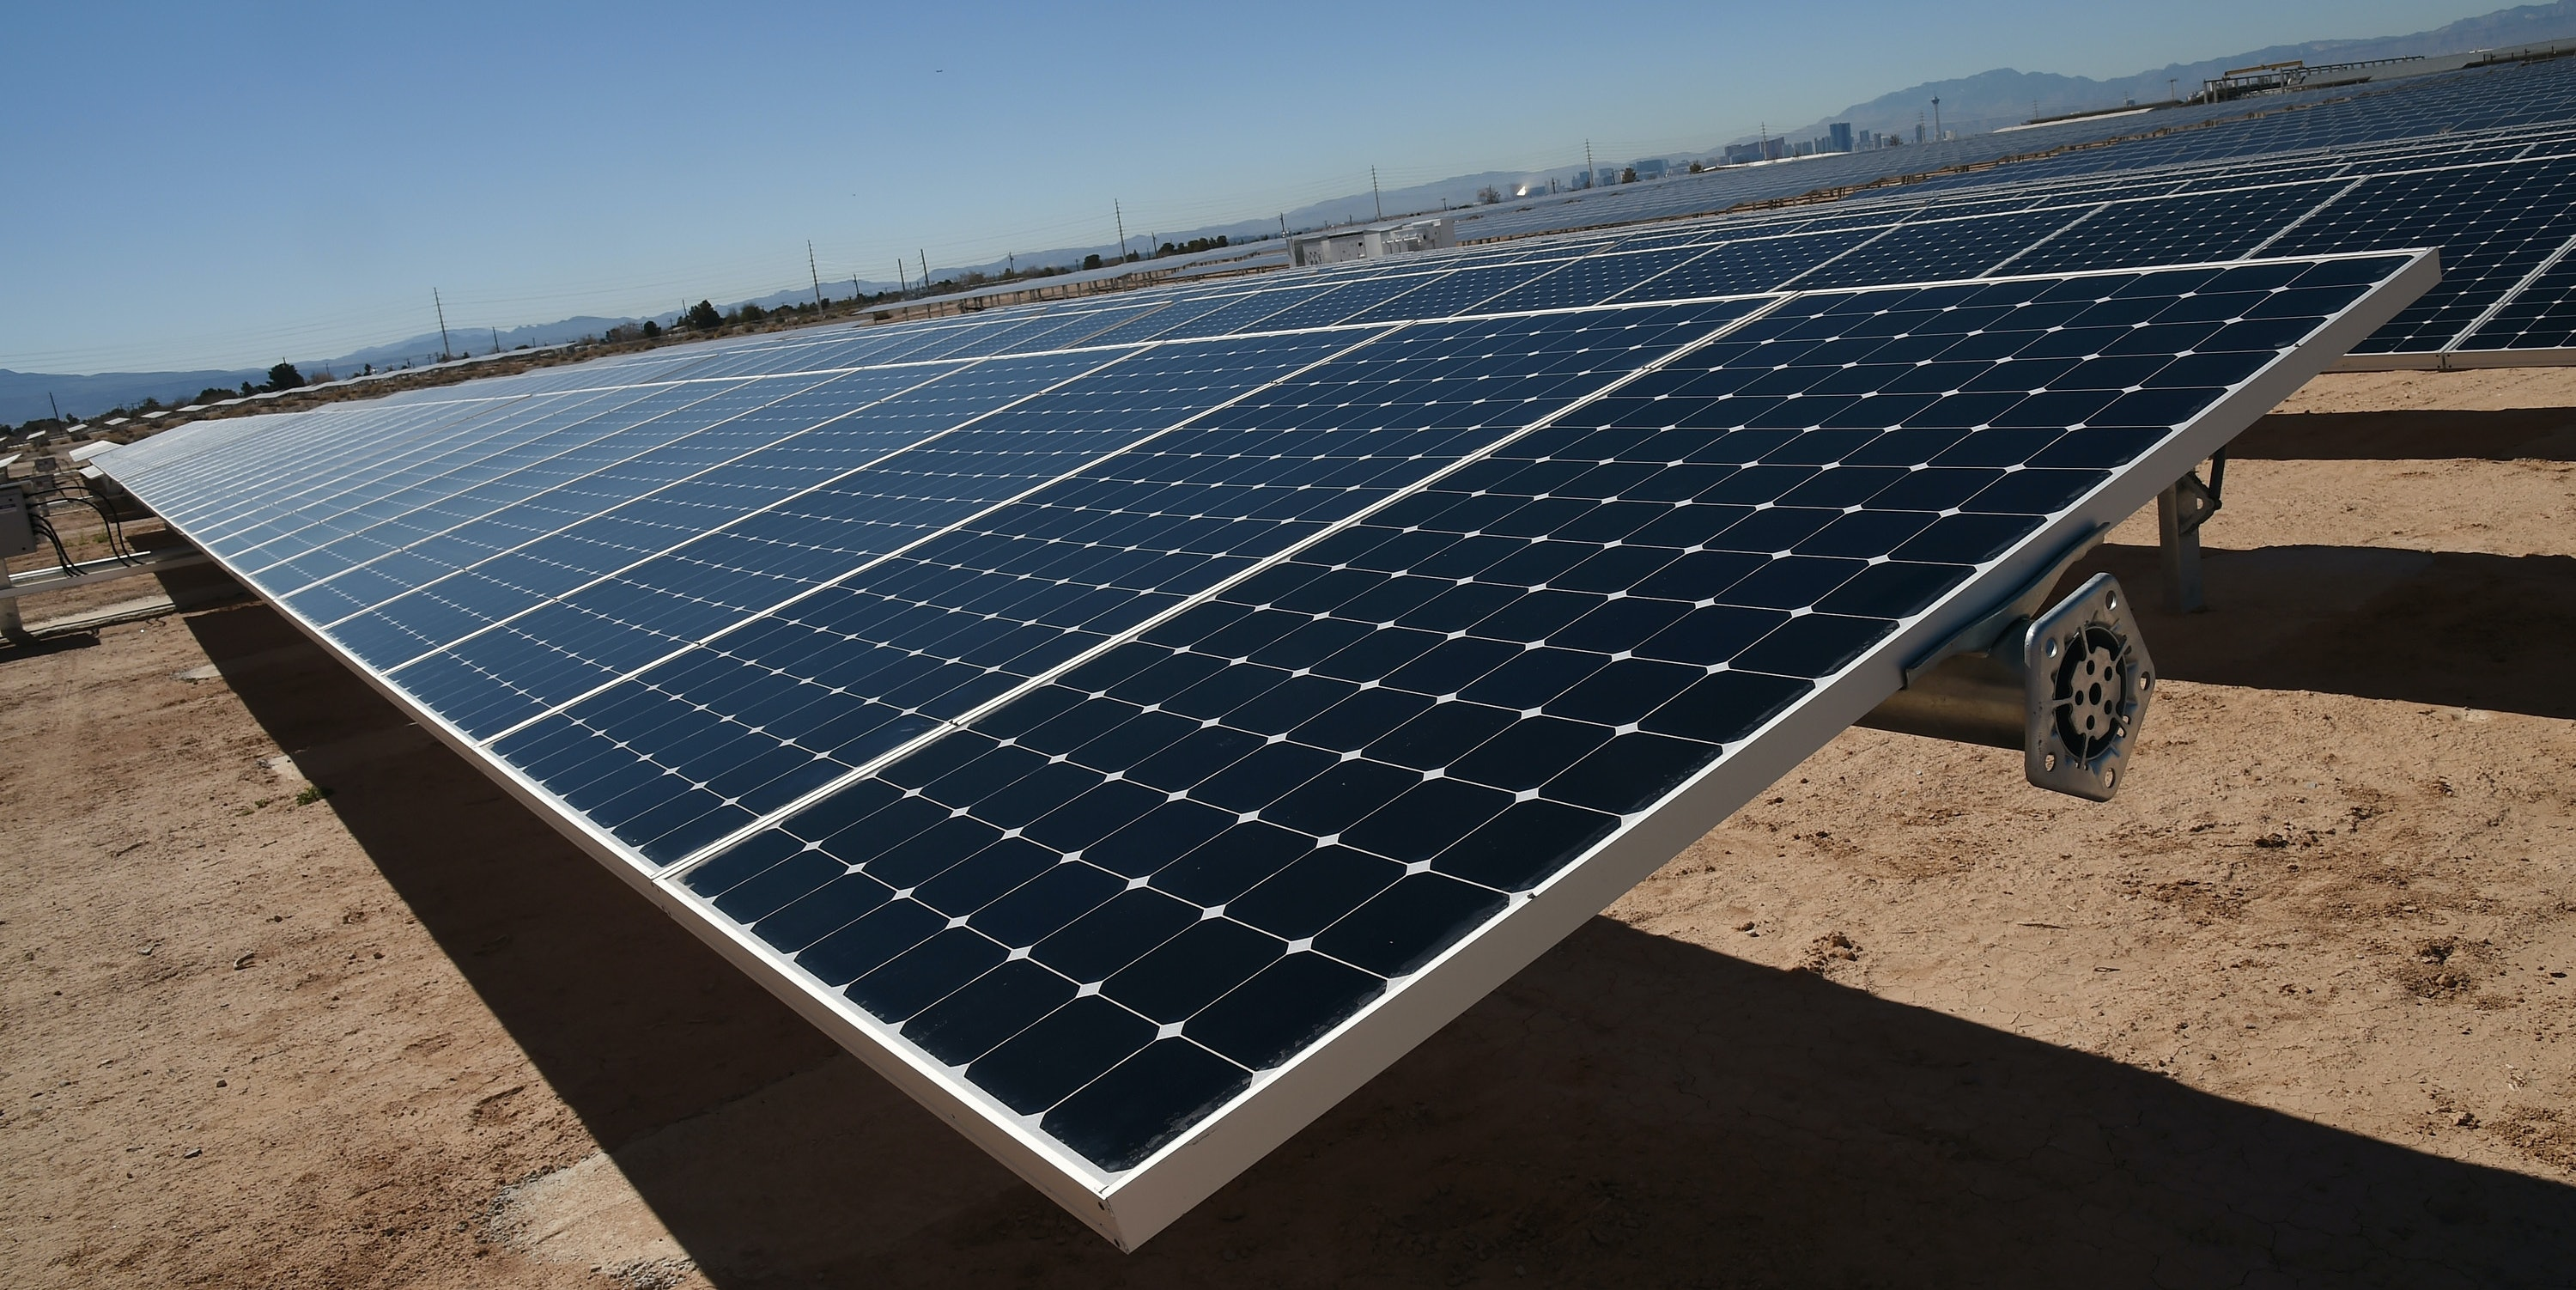 LAS VEGAS, NV - FEBRUARY 16:  Rows of solar panels operate during a dedication ceremony to commemorate the completion of the 102-acre, 15-megawatt Solar Array II Generating Station at Nellis Air Force Base on February 16, 2016 in Las Vegas, Nevada. When coupled with the 13.2-megawatt Nellis Solar Star project completed in 2007, Nellis has the largest solar photovoltaic system in the Department of Defense. During daylight hours the two solar fields combined provide almost all of the base's energy needs or about 42 percent of its overall electricity requirements. Power from the array that is not used will go to the NV Energy grid and back into the local community.  (Photo by Ethan Miller/Getty Images)